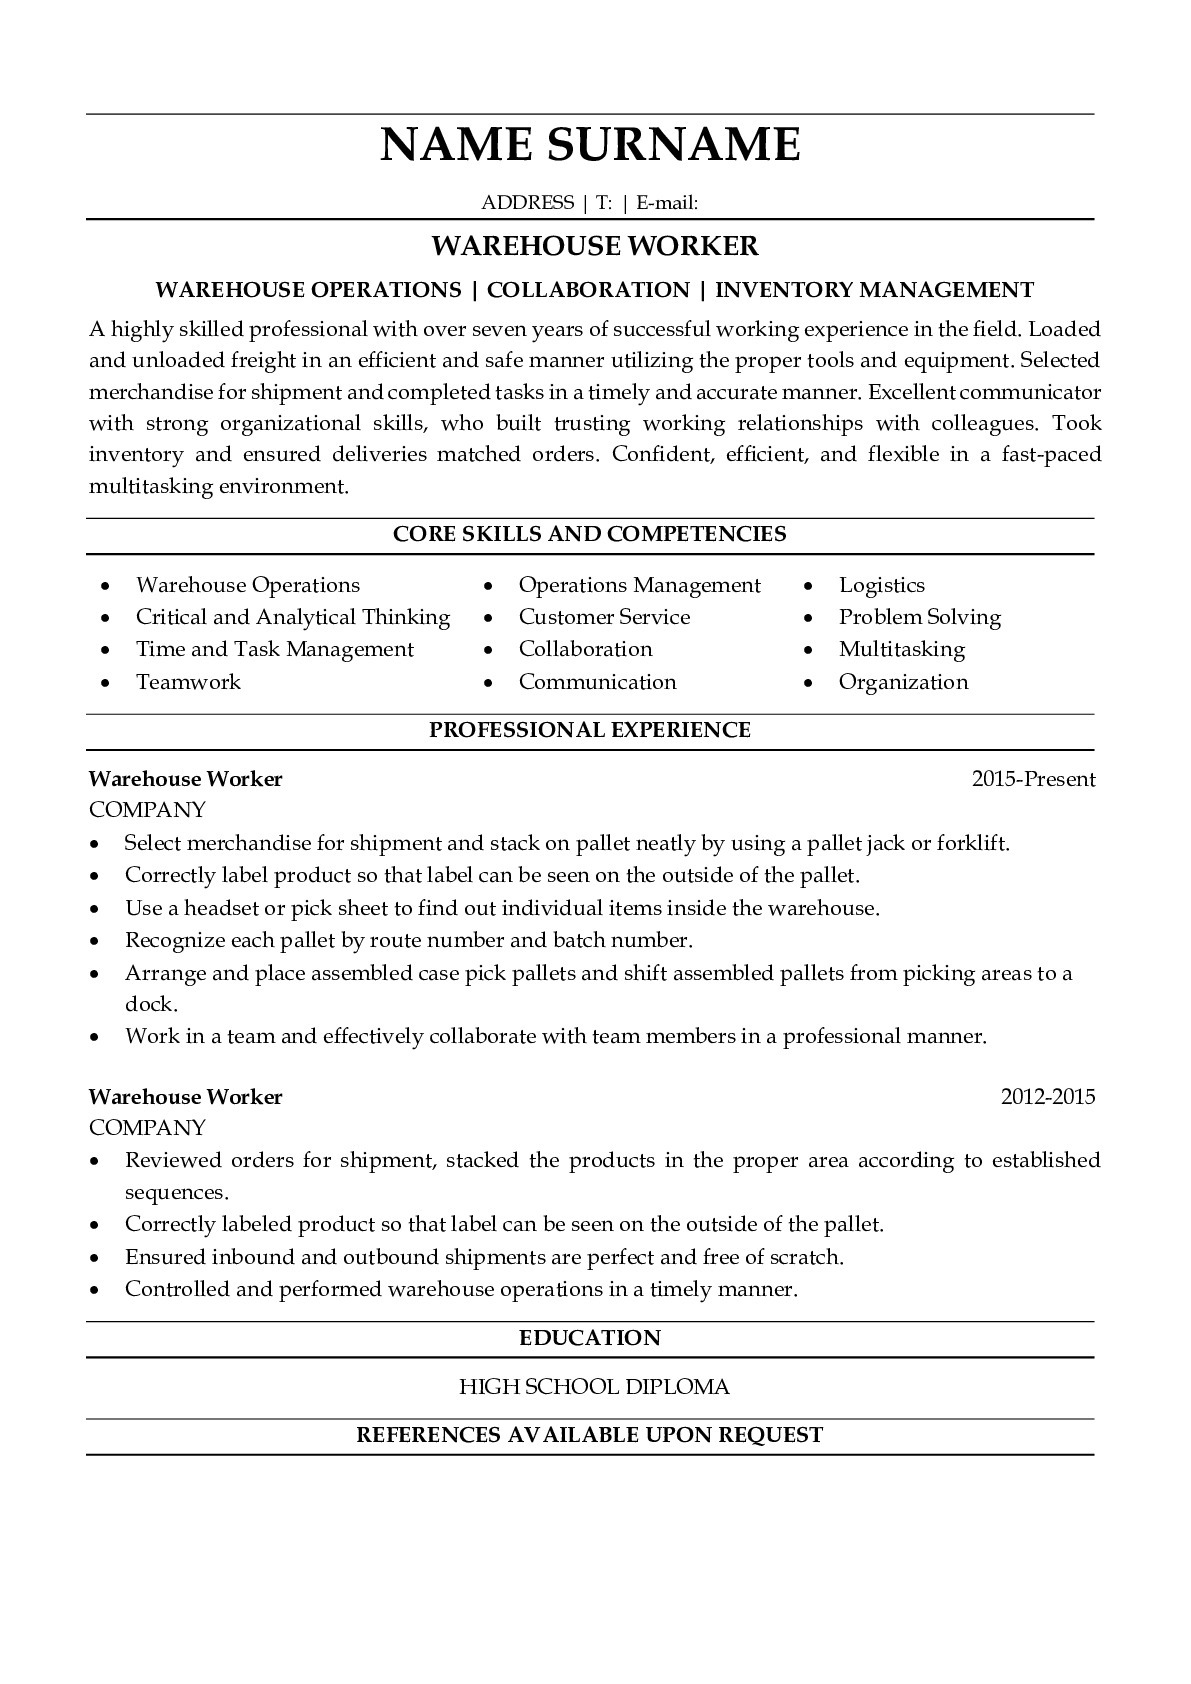 Resume Example for Warehouse Worker